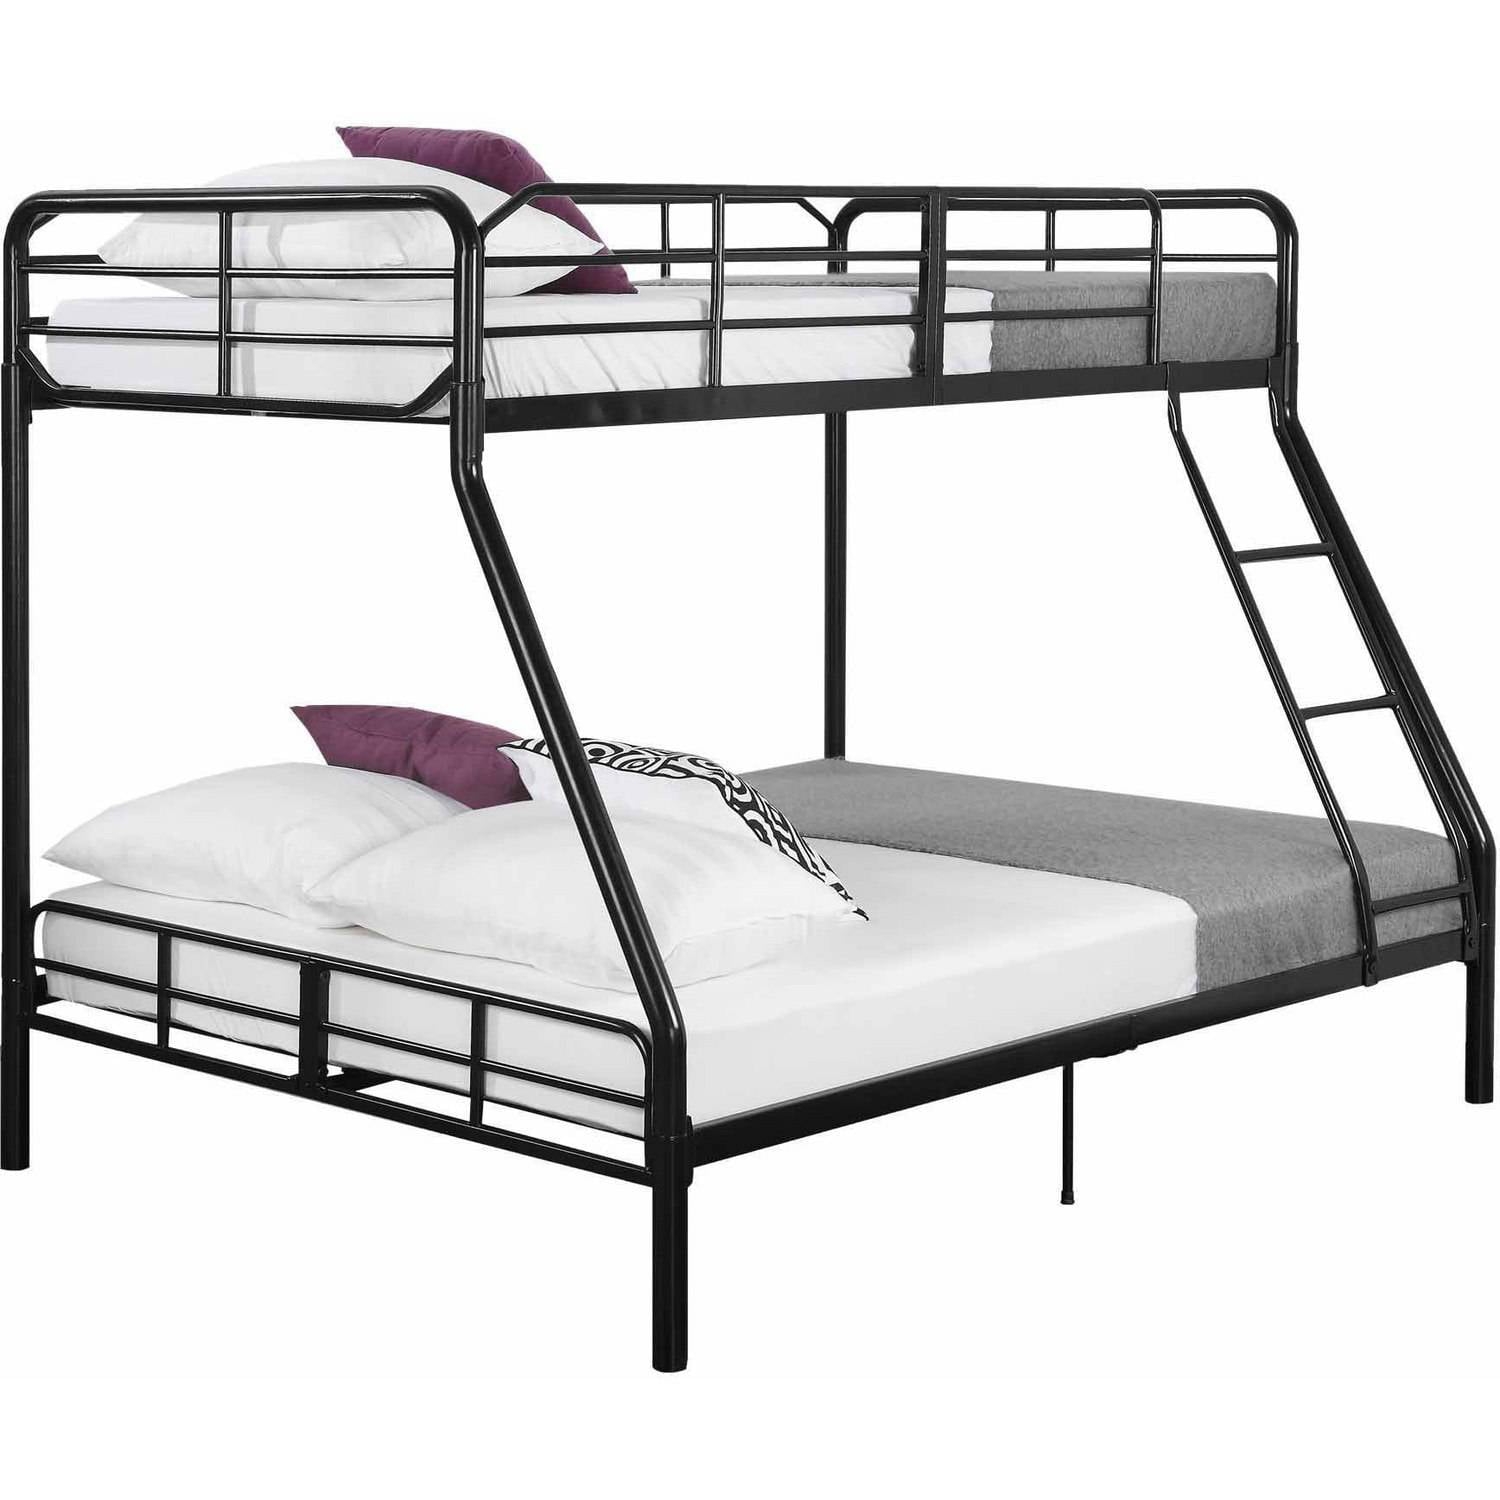 with ideas bed twin trundle slides storage stairs loft full beds over staircase bunk